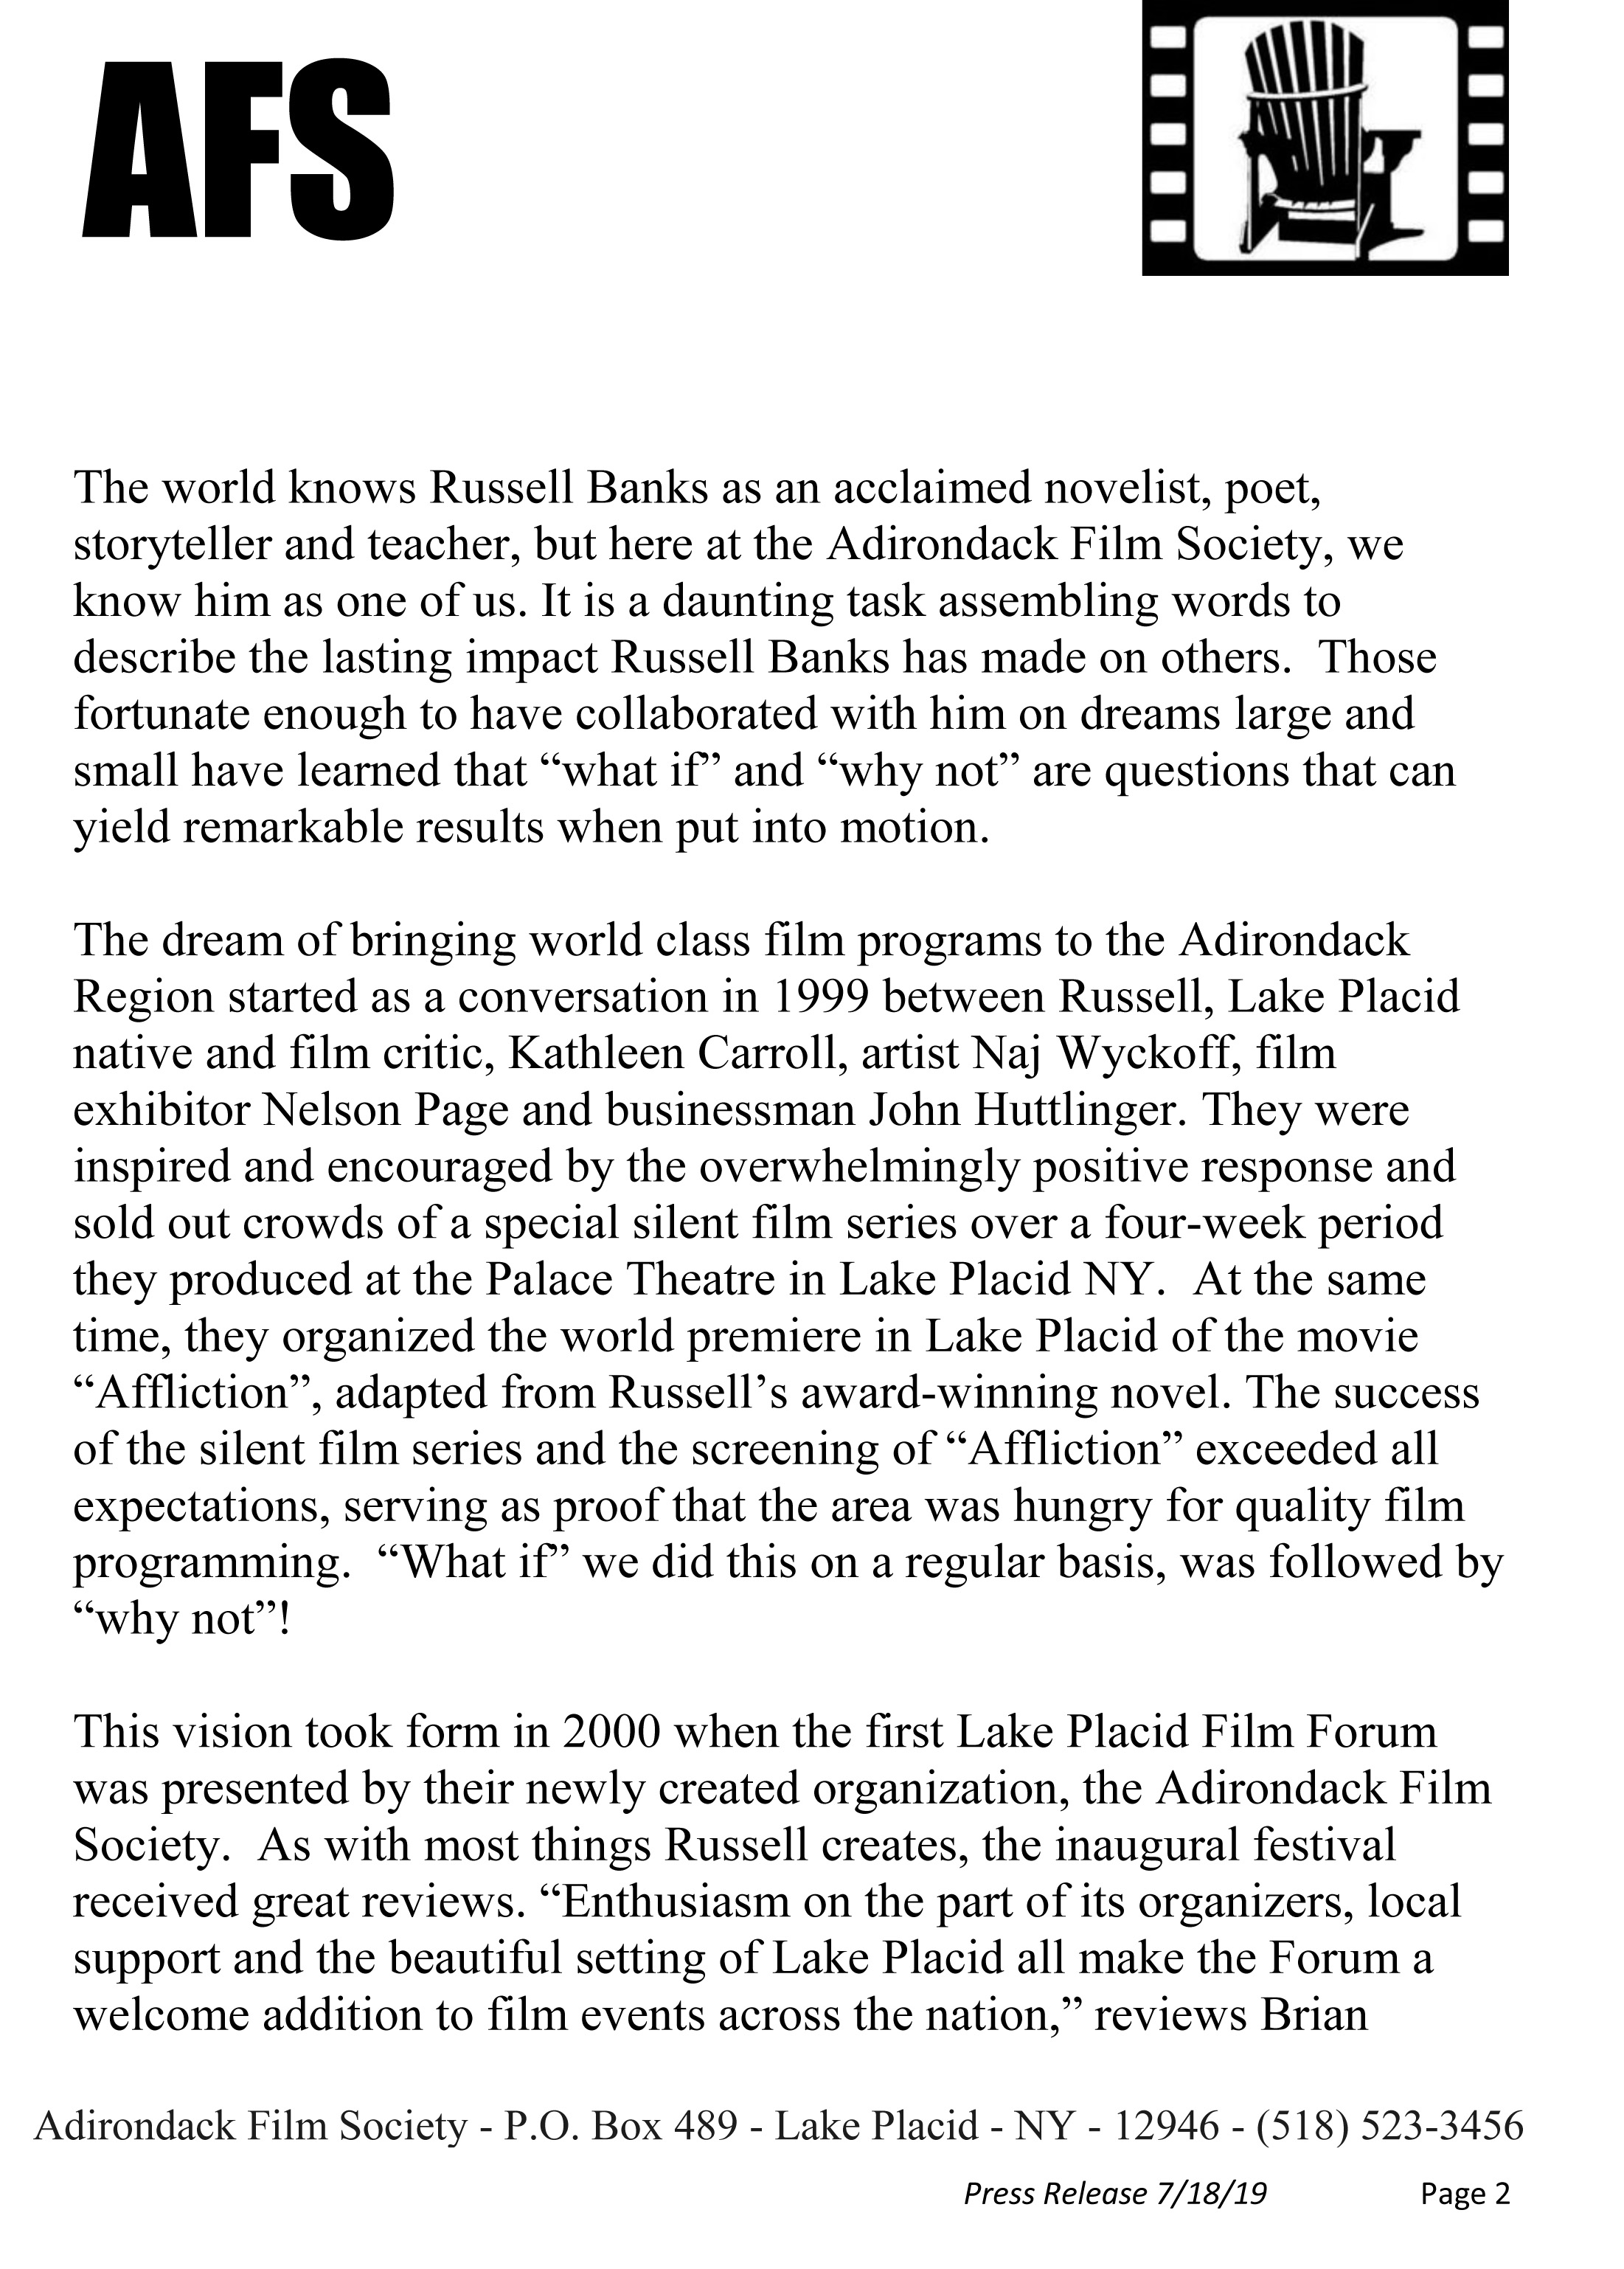 Adirondack Film Society Press Release - Russell Banks Tribute Gala 2019-2.jpg